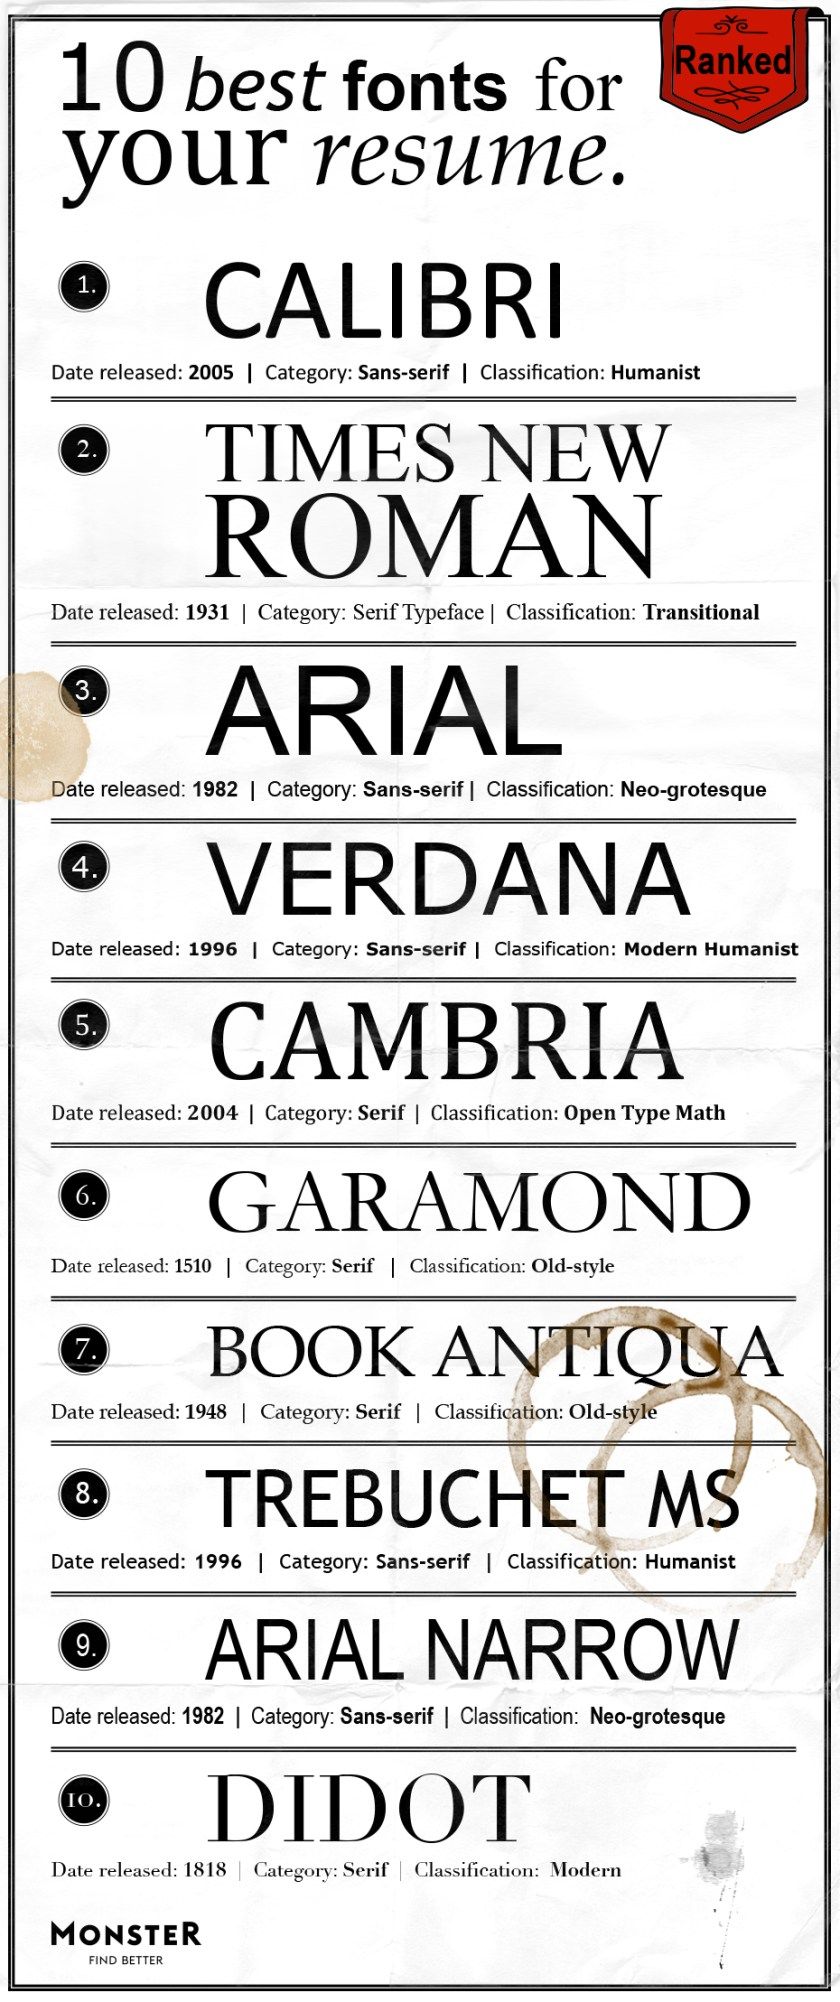 The best fonts for your resume, ranked